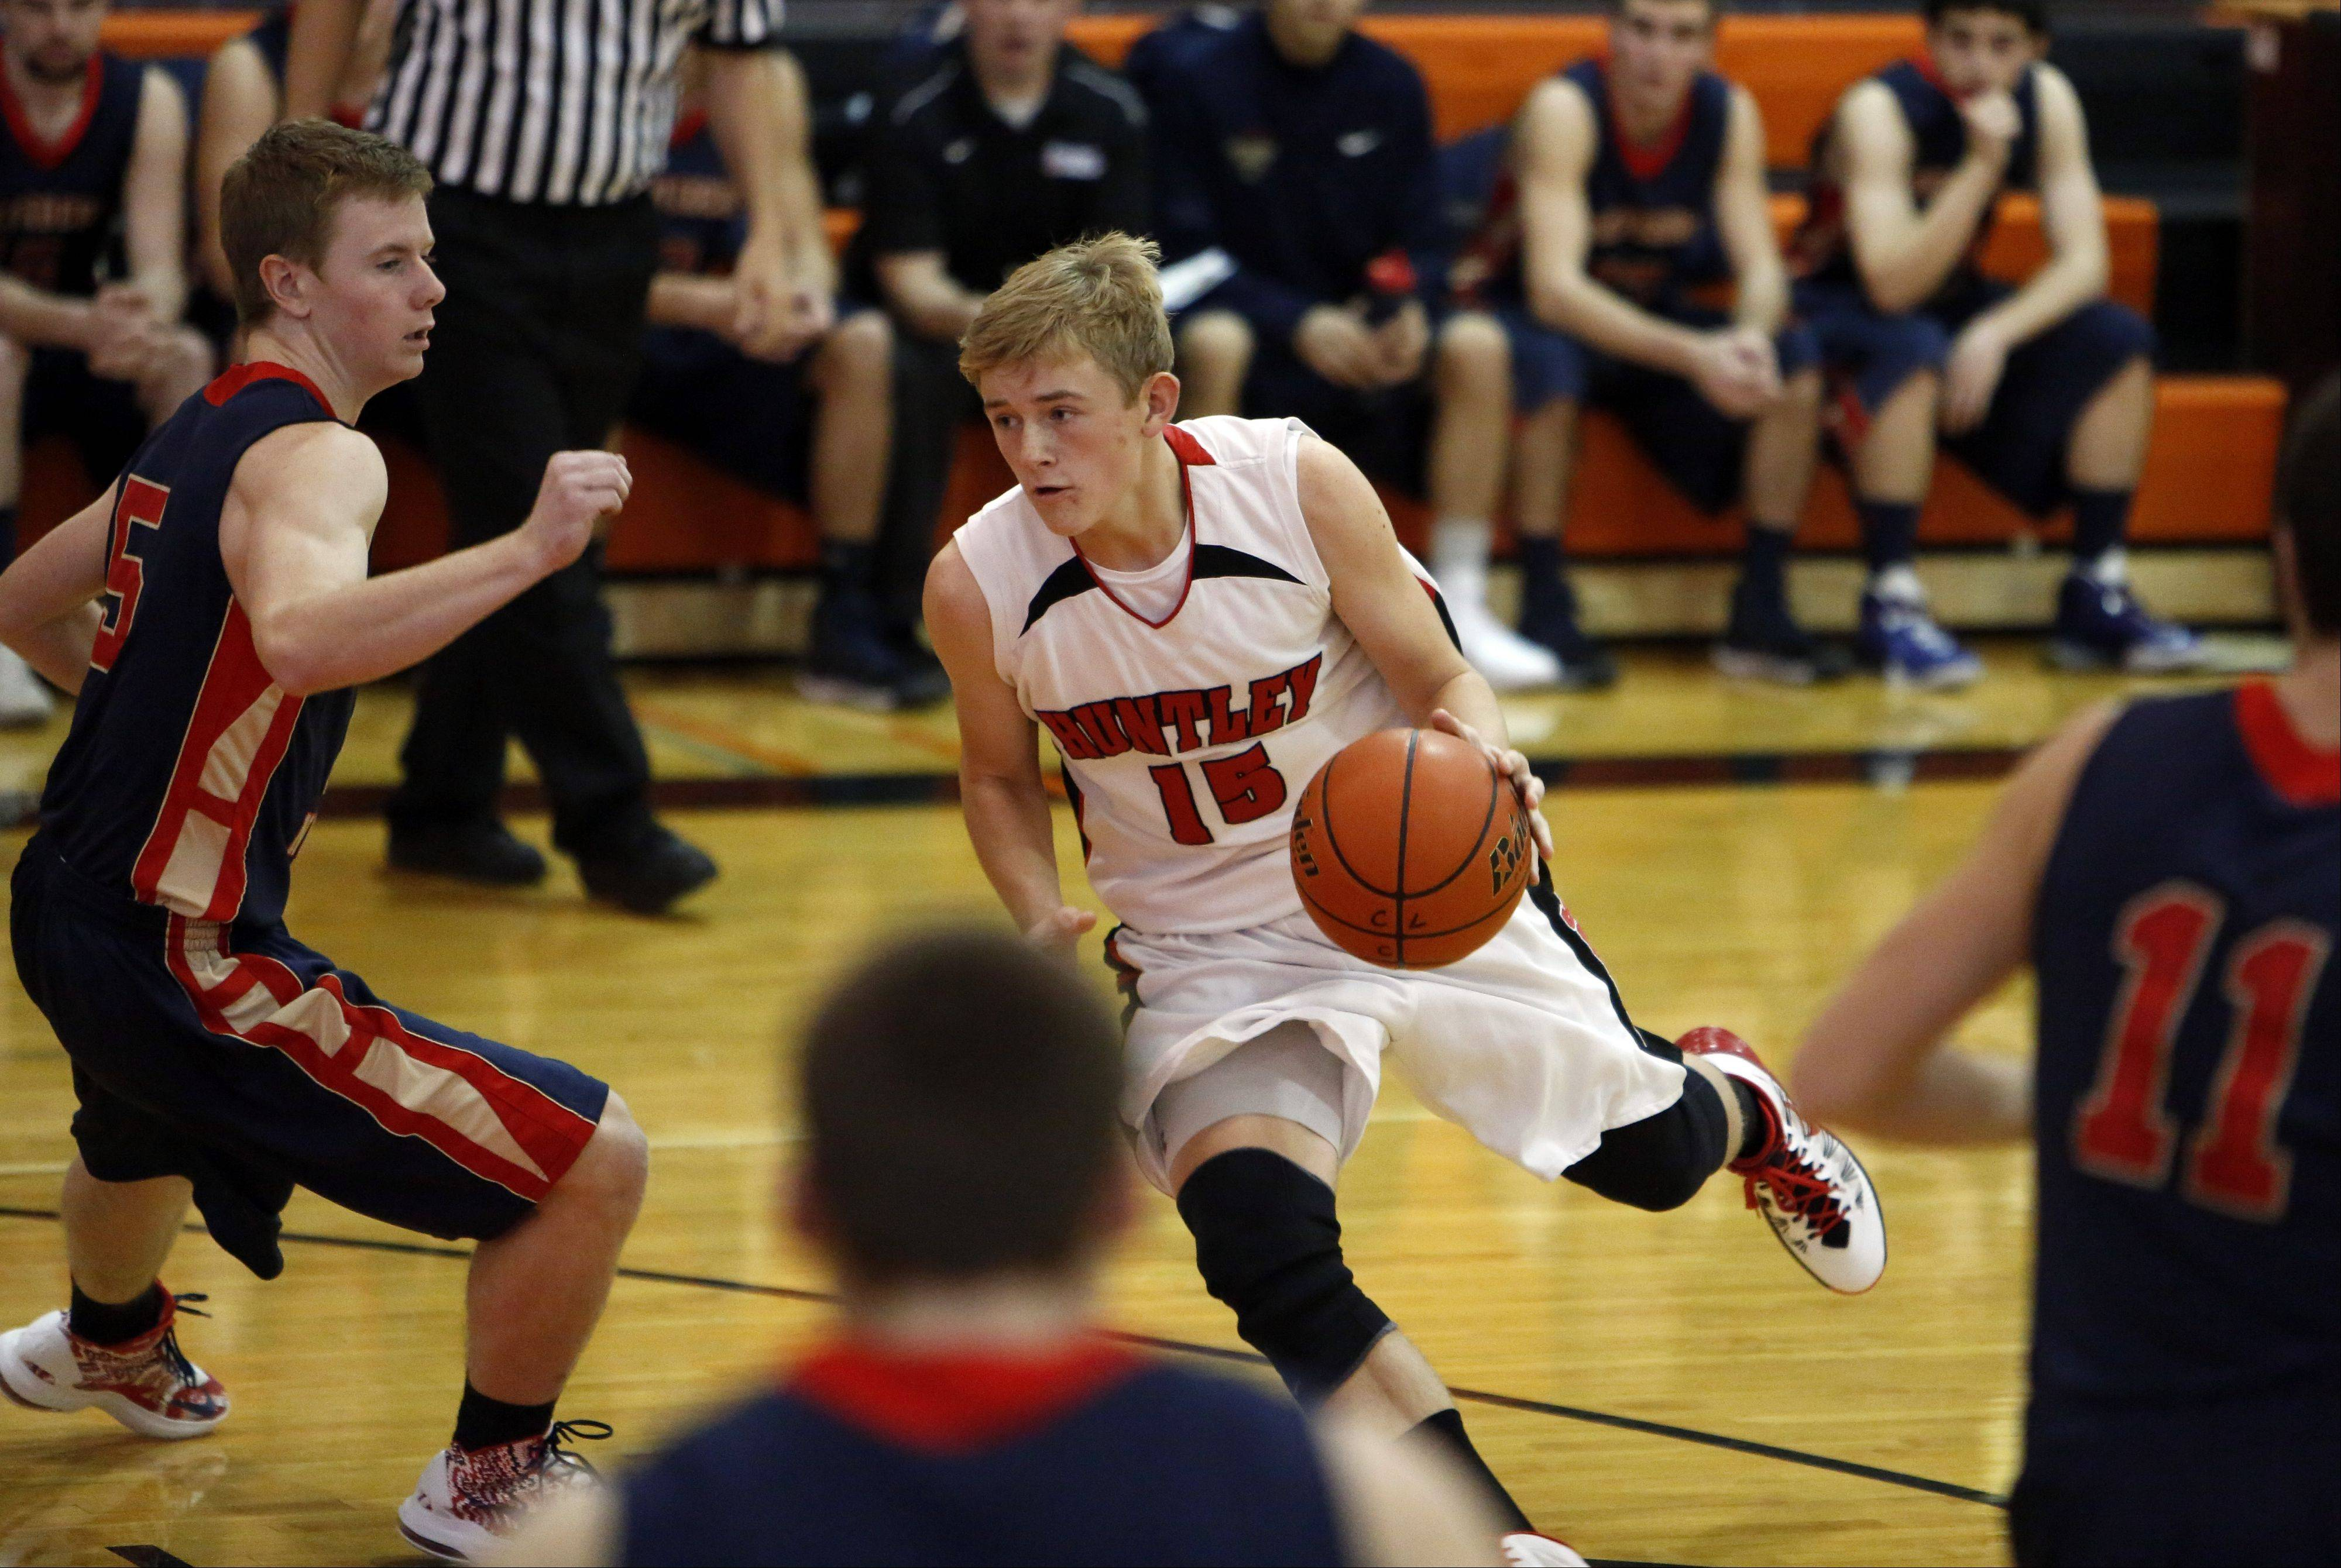 Huntley's Jack Bessey drives to the hoop around Belvidere North's Hunter Blake during the Crystal Lake Central High School Coaches vs, Cancer Thanksgiving Tourney Saturday in Crystal Lake.